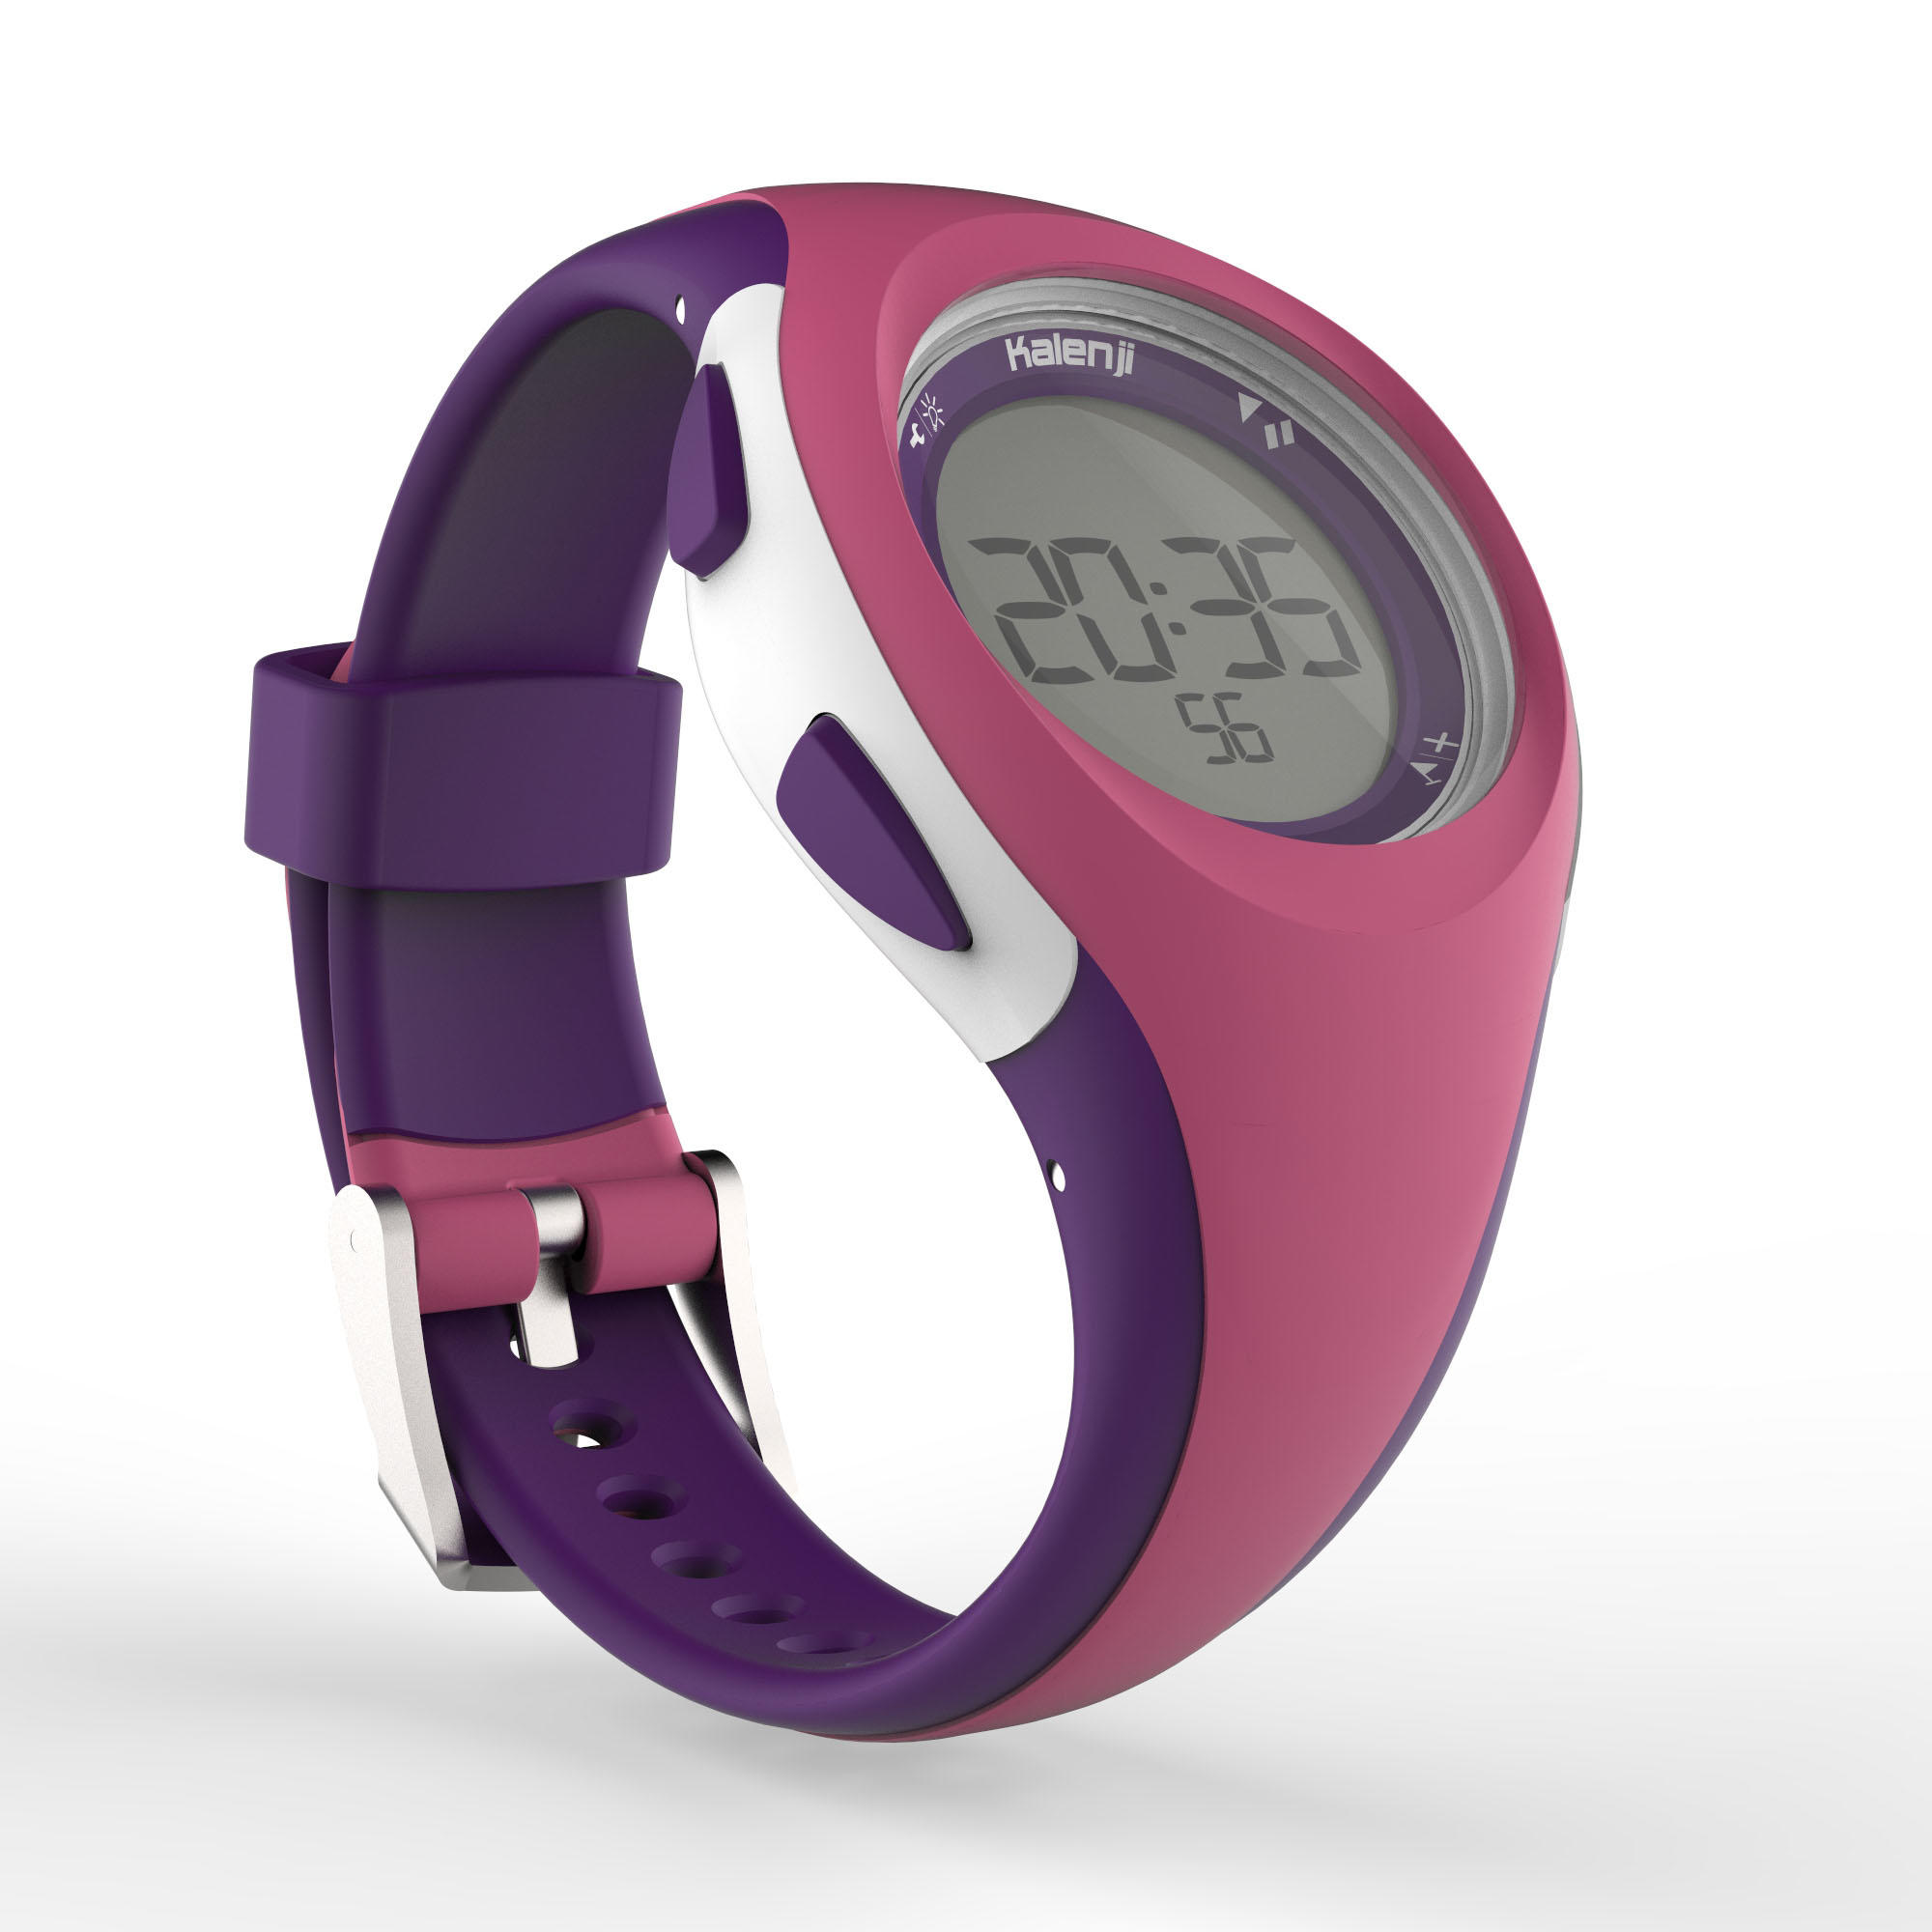 W200 S women's running watch - Pink and Purple